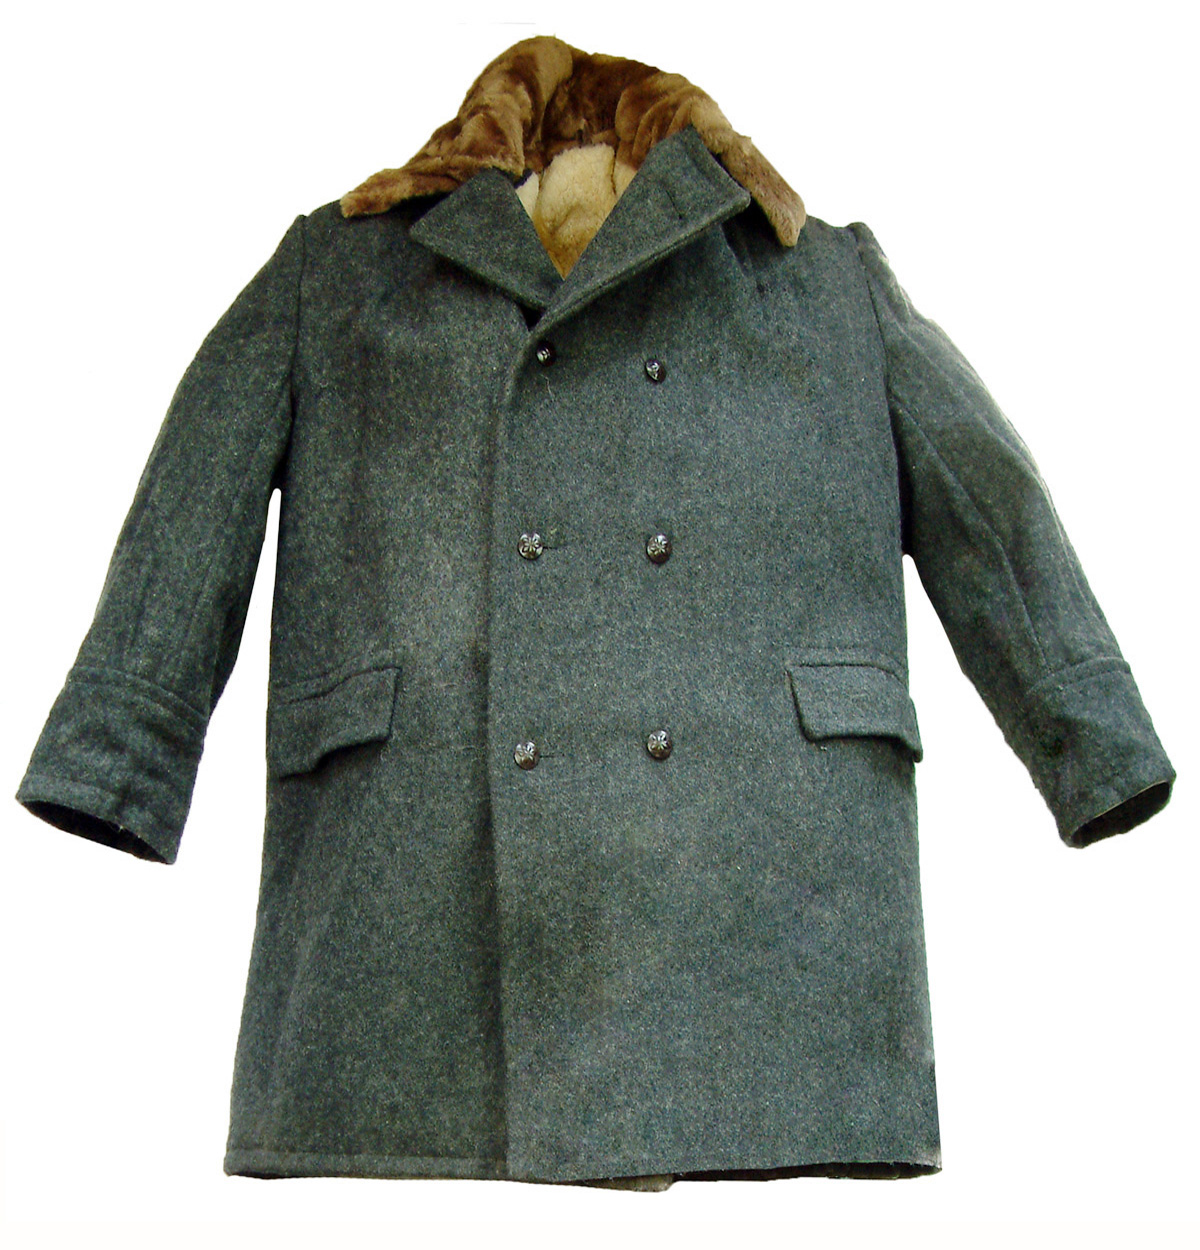 Soviet Issue Sheepskin Lined Great Coat by Russian Army